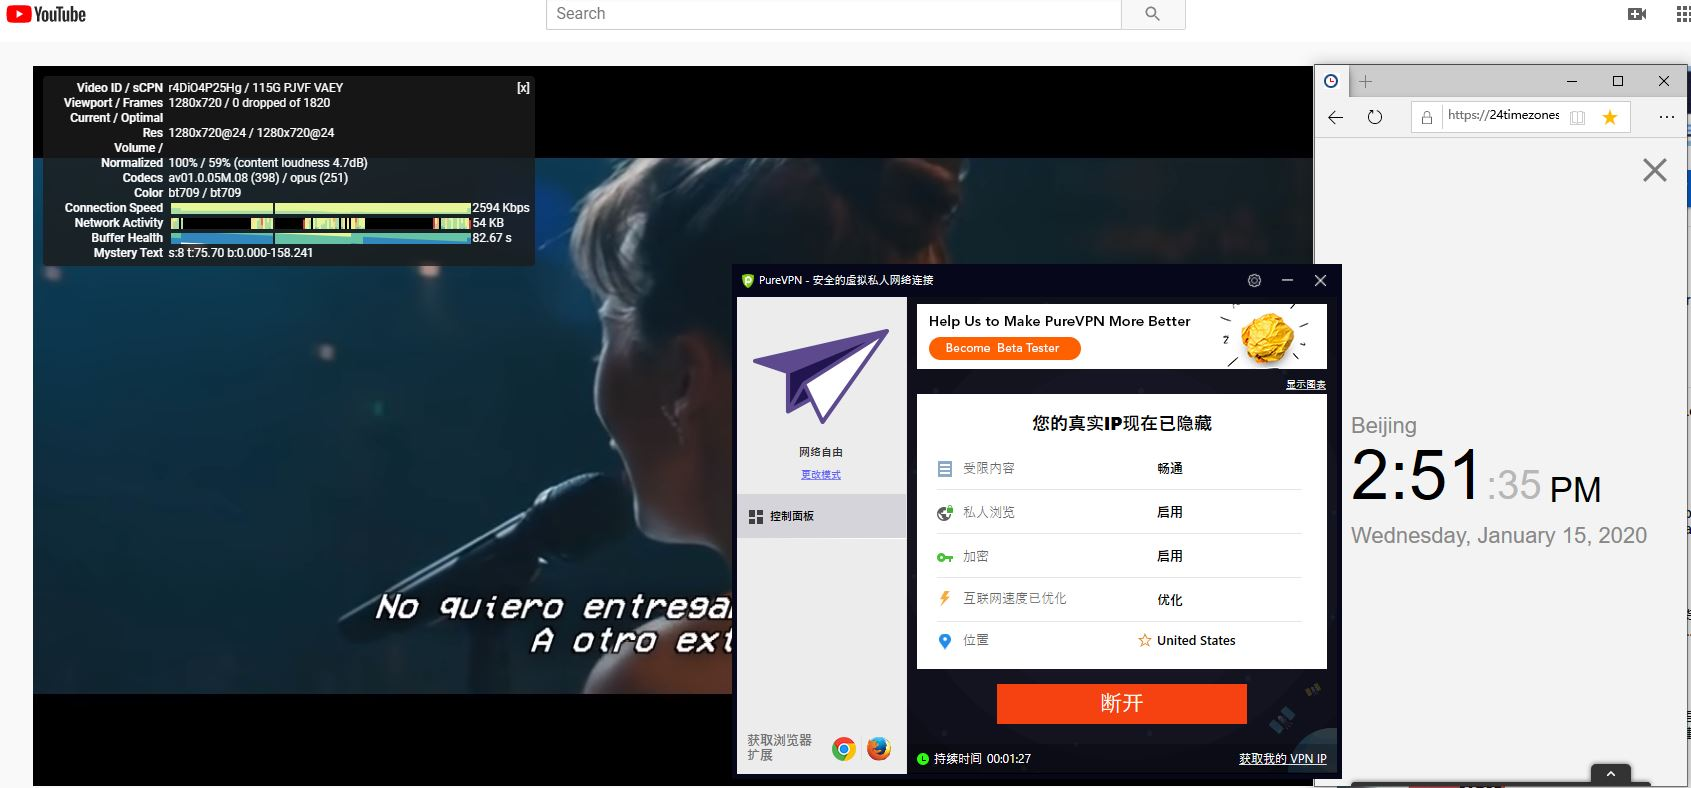 Windows10 PureVPN United States 中国VPN翻墙 科学上网 YouTube连接速度 VPN测速 - 20200115